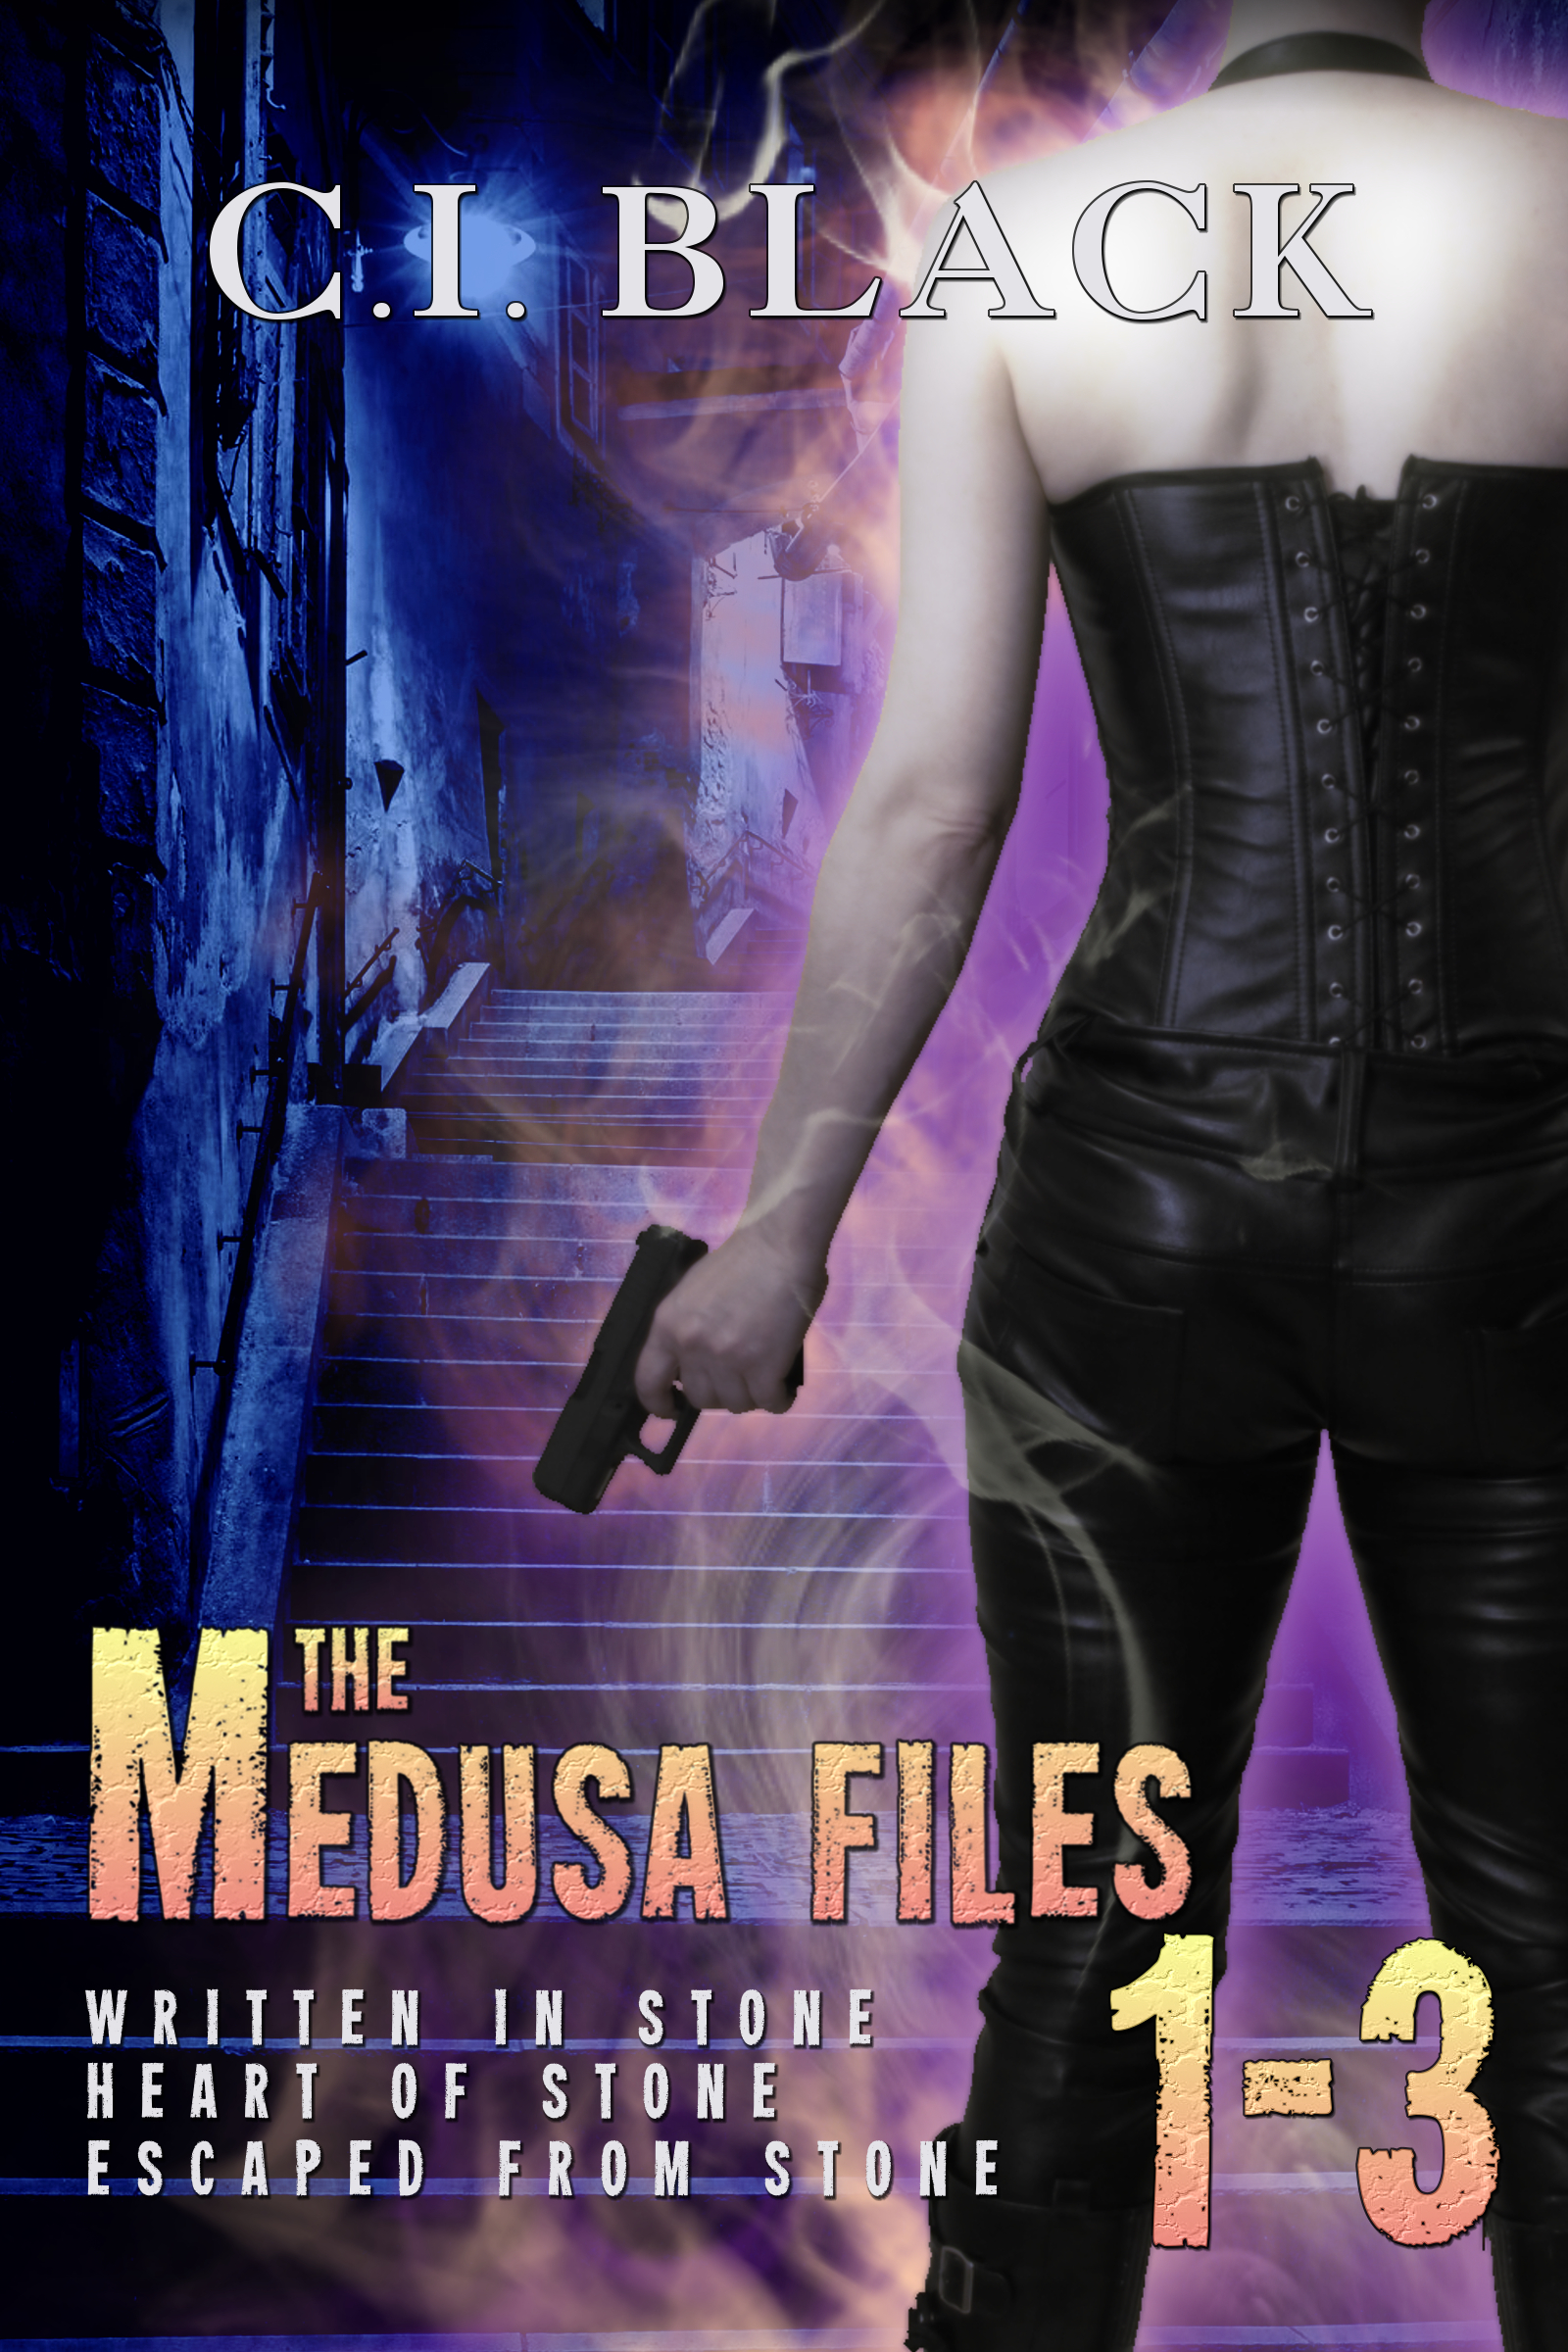 Medusa Files Collection 1 2 3 an urban fantasy / paranormal romance series by C.I. Black